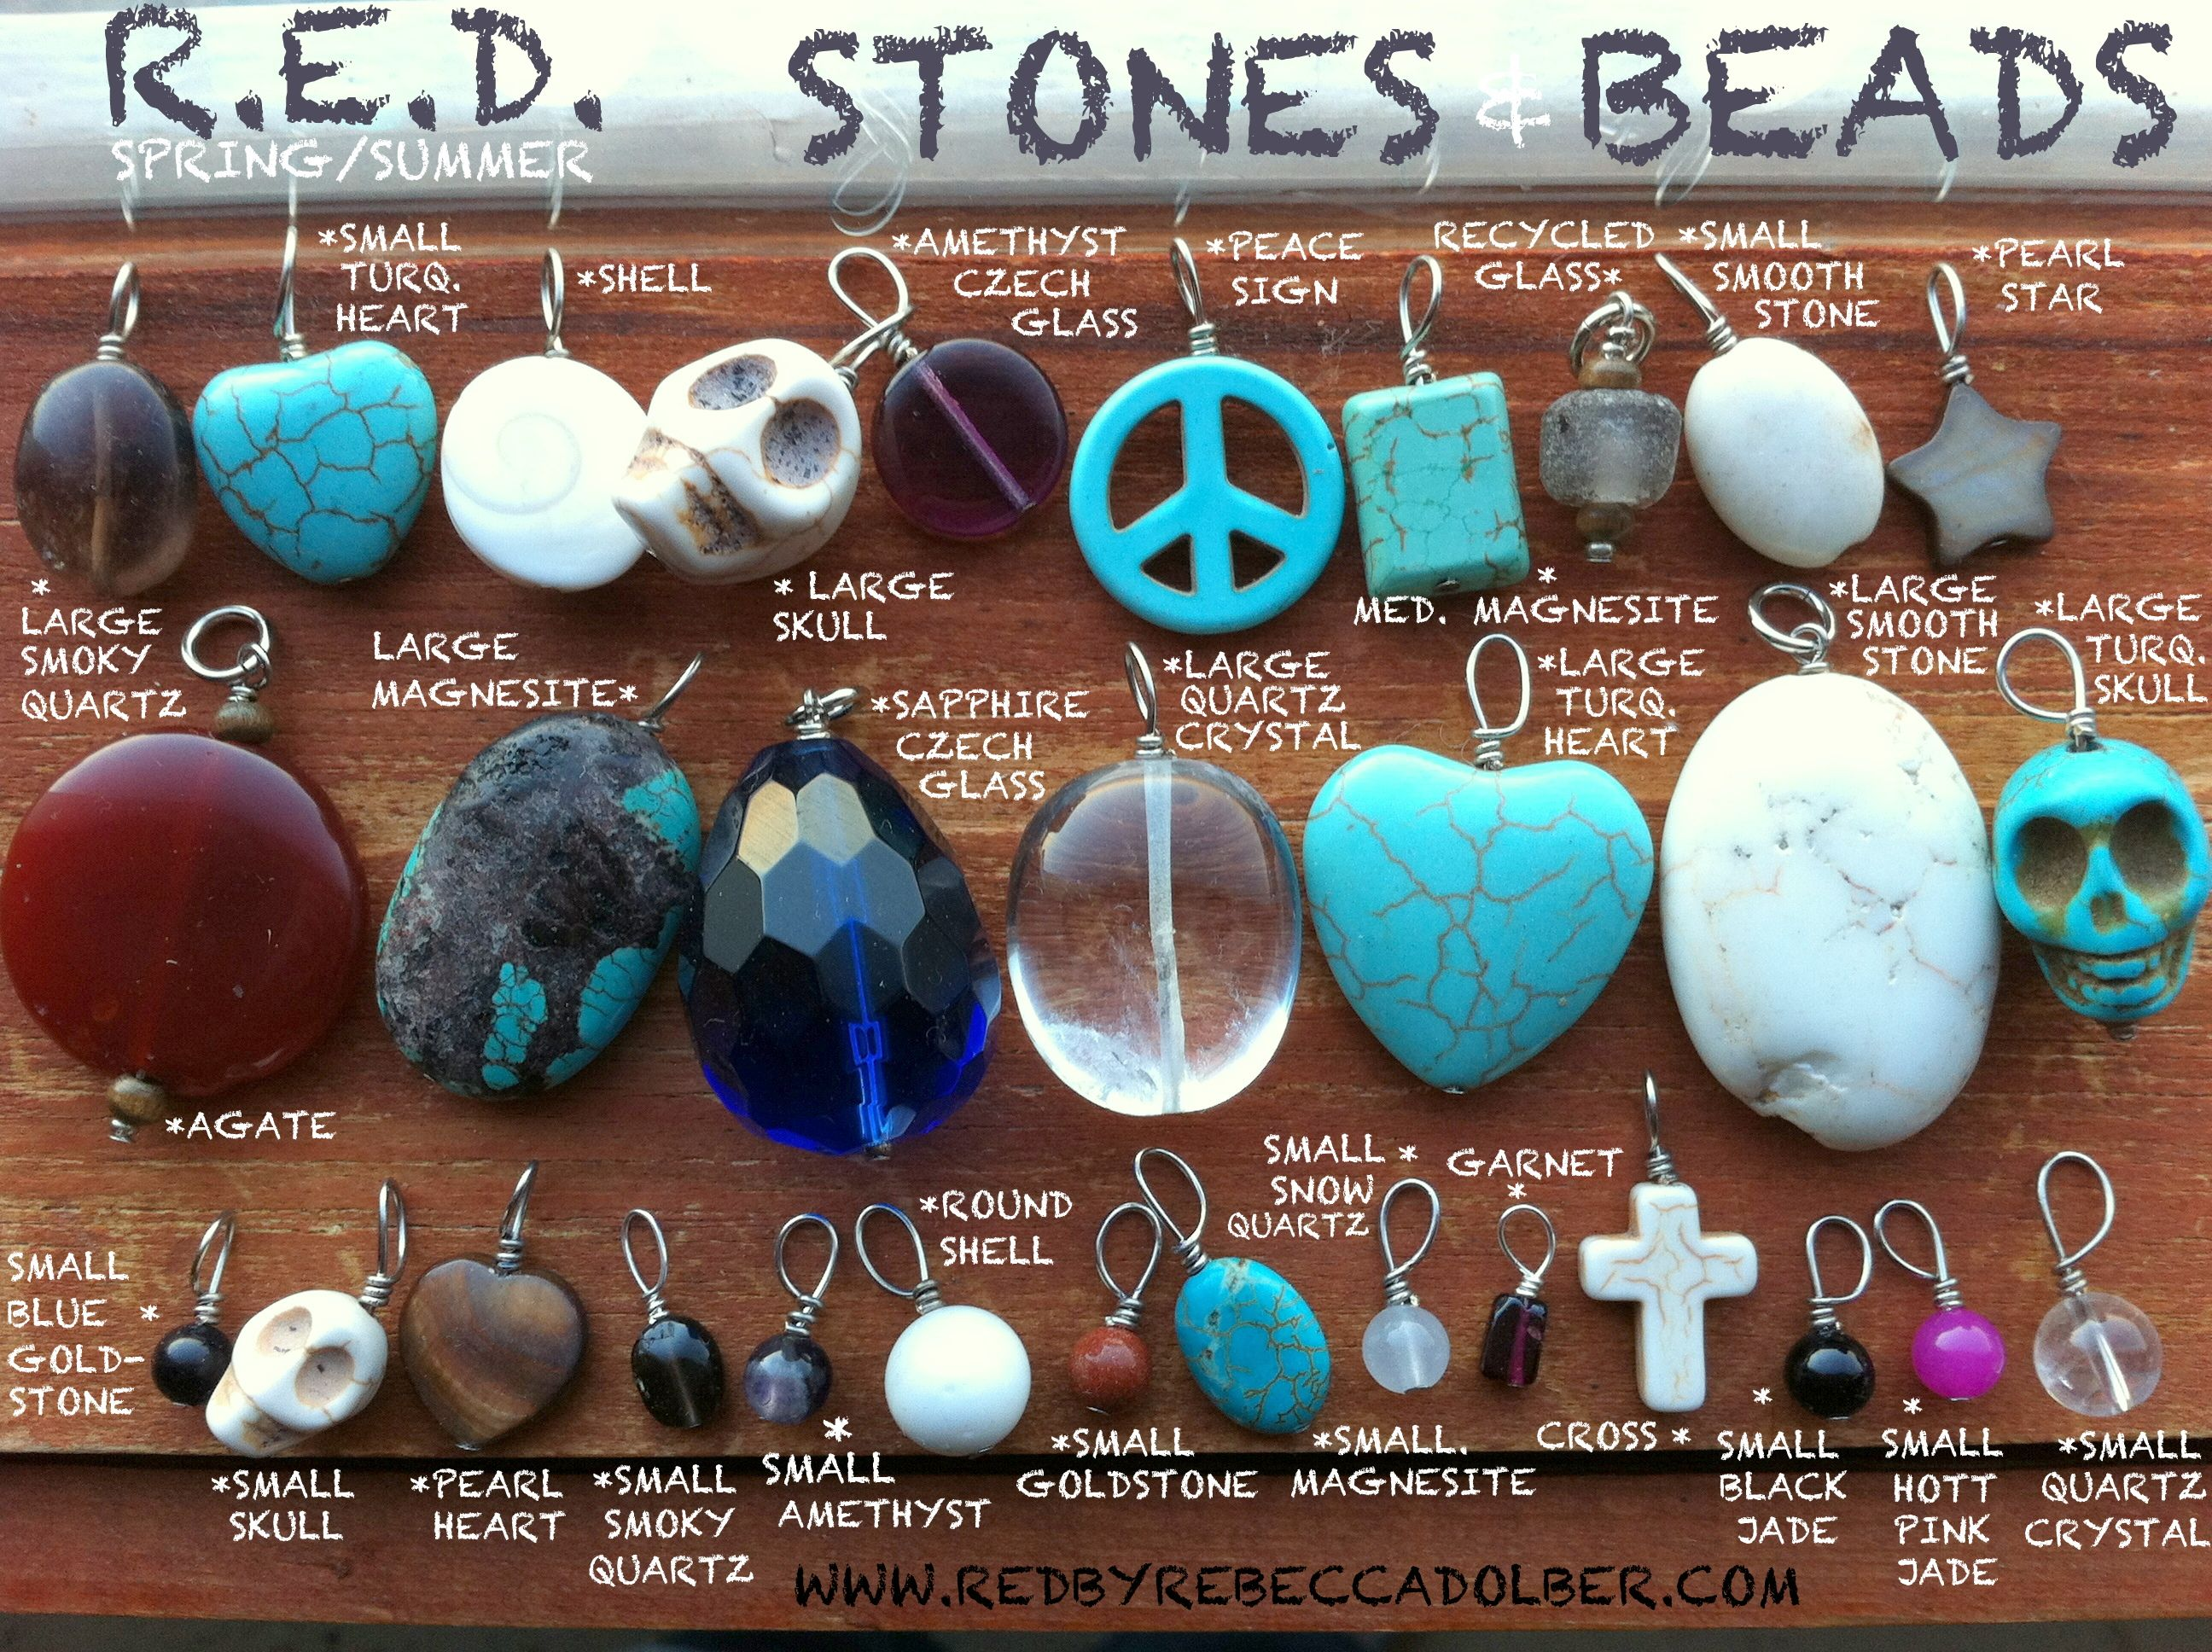 Stones and Beads - R.E.D.